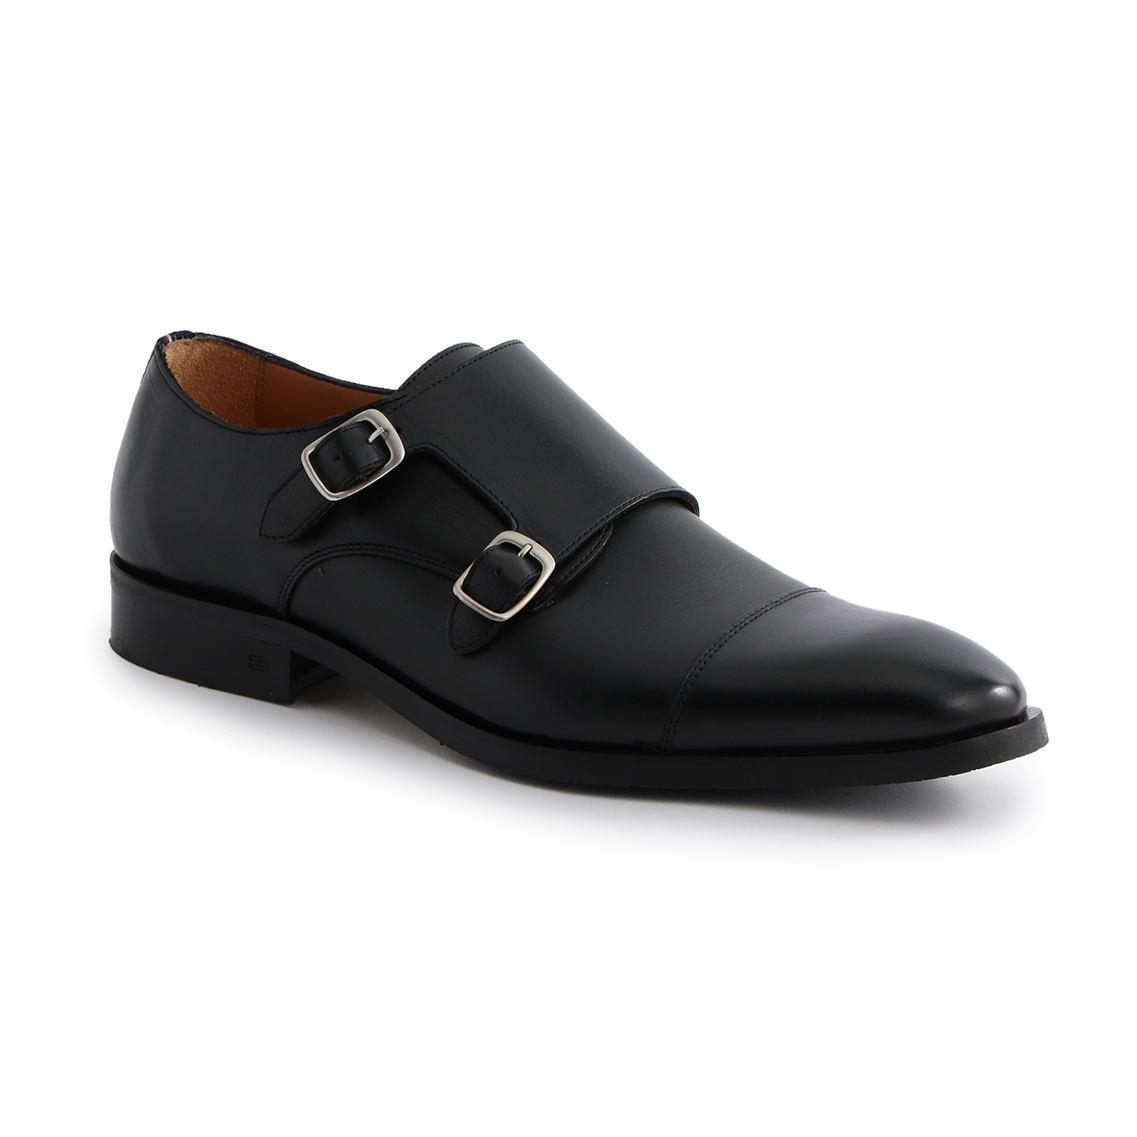 LEATHER DOUBLE MONC SHOES